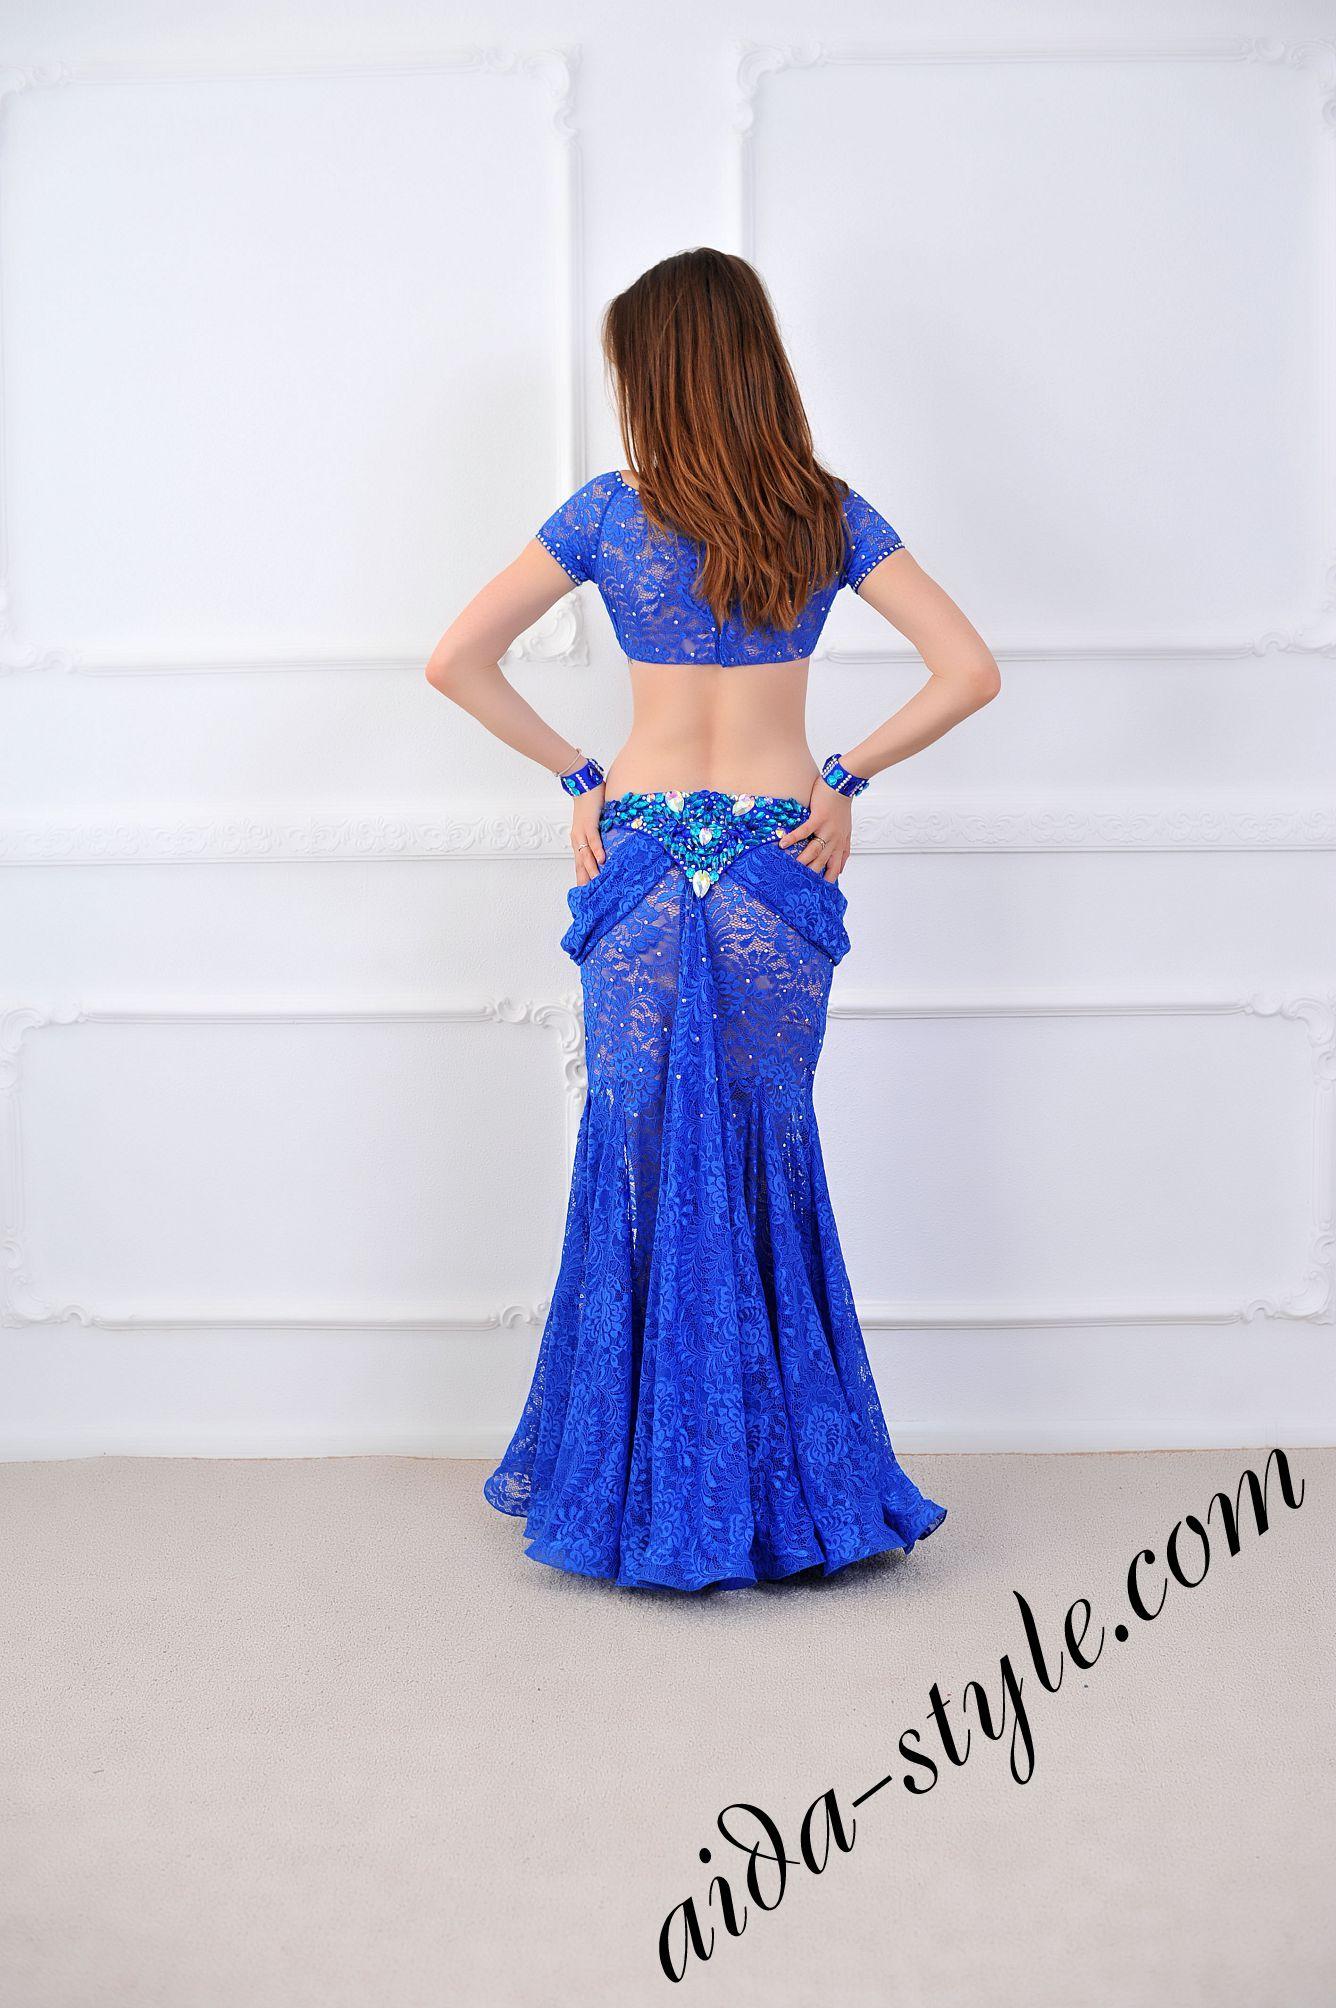 royal blue pro belly dance costume from lace with bolero and mermaid skirt (4) & royal blue pro belly dance costume from lace with bolero and mermaid ...